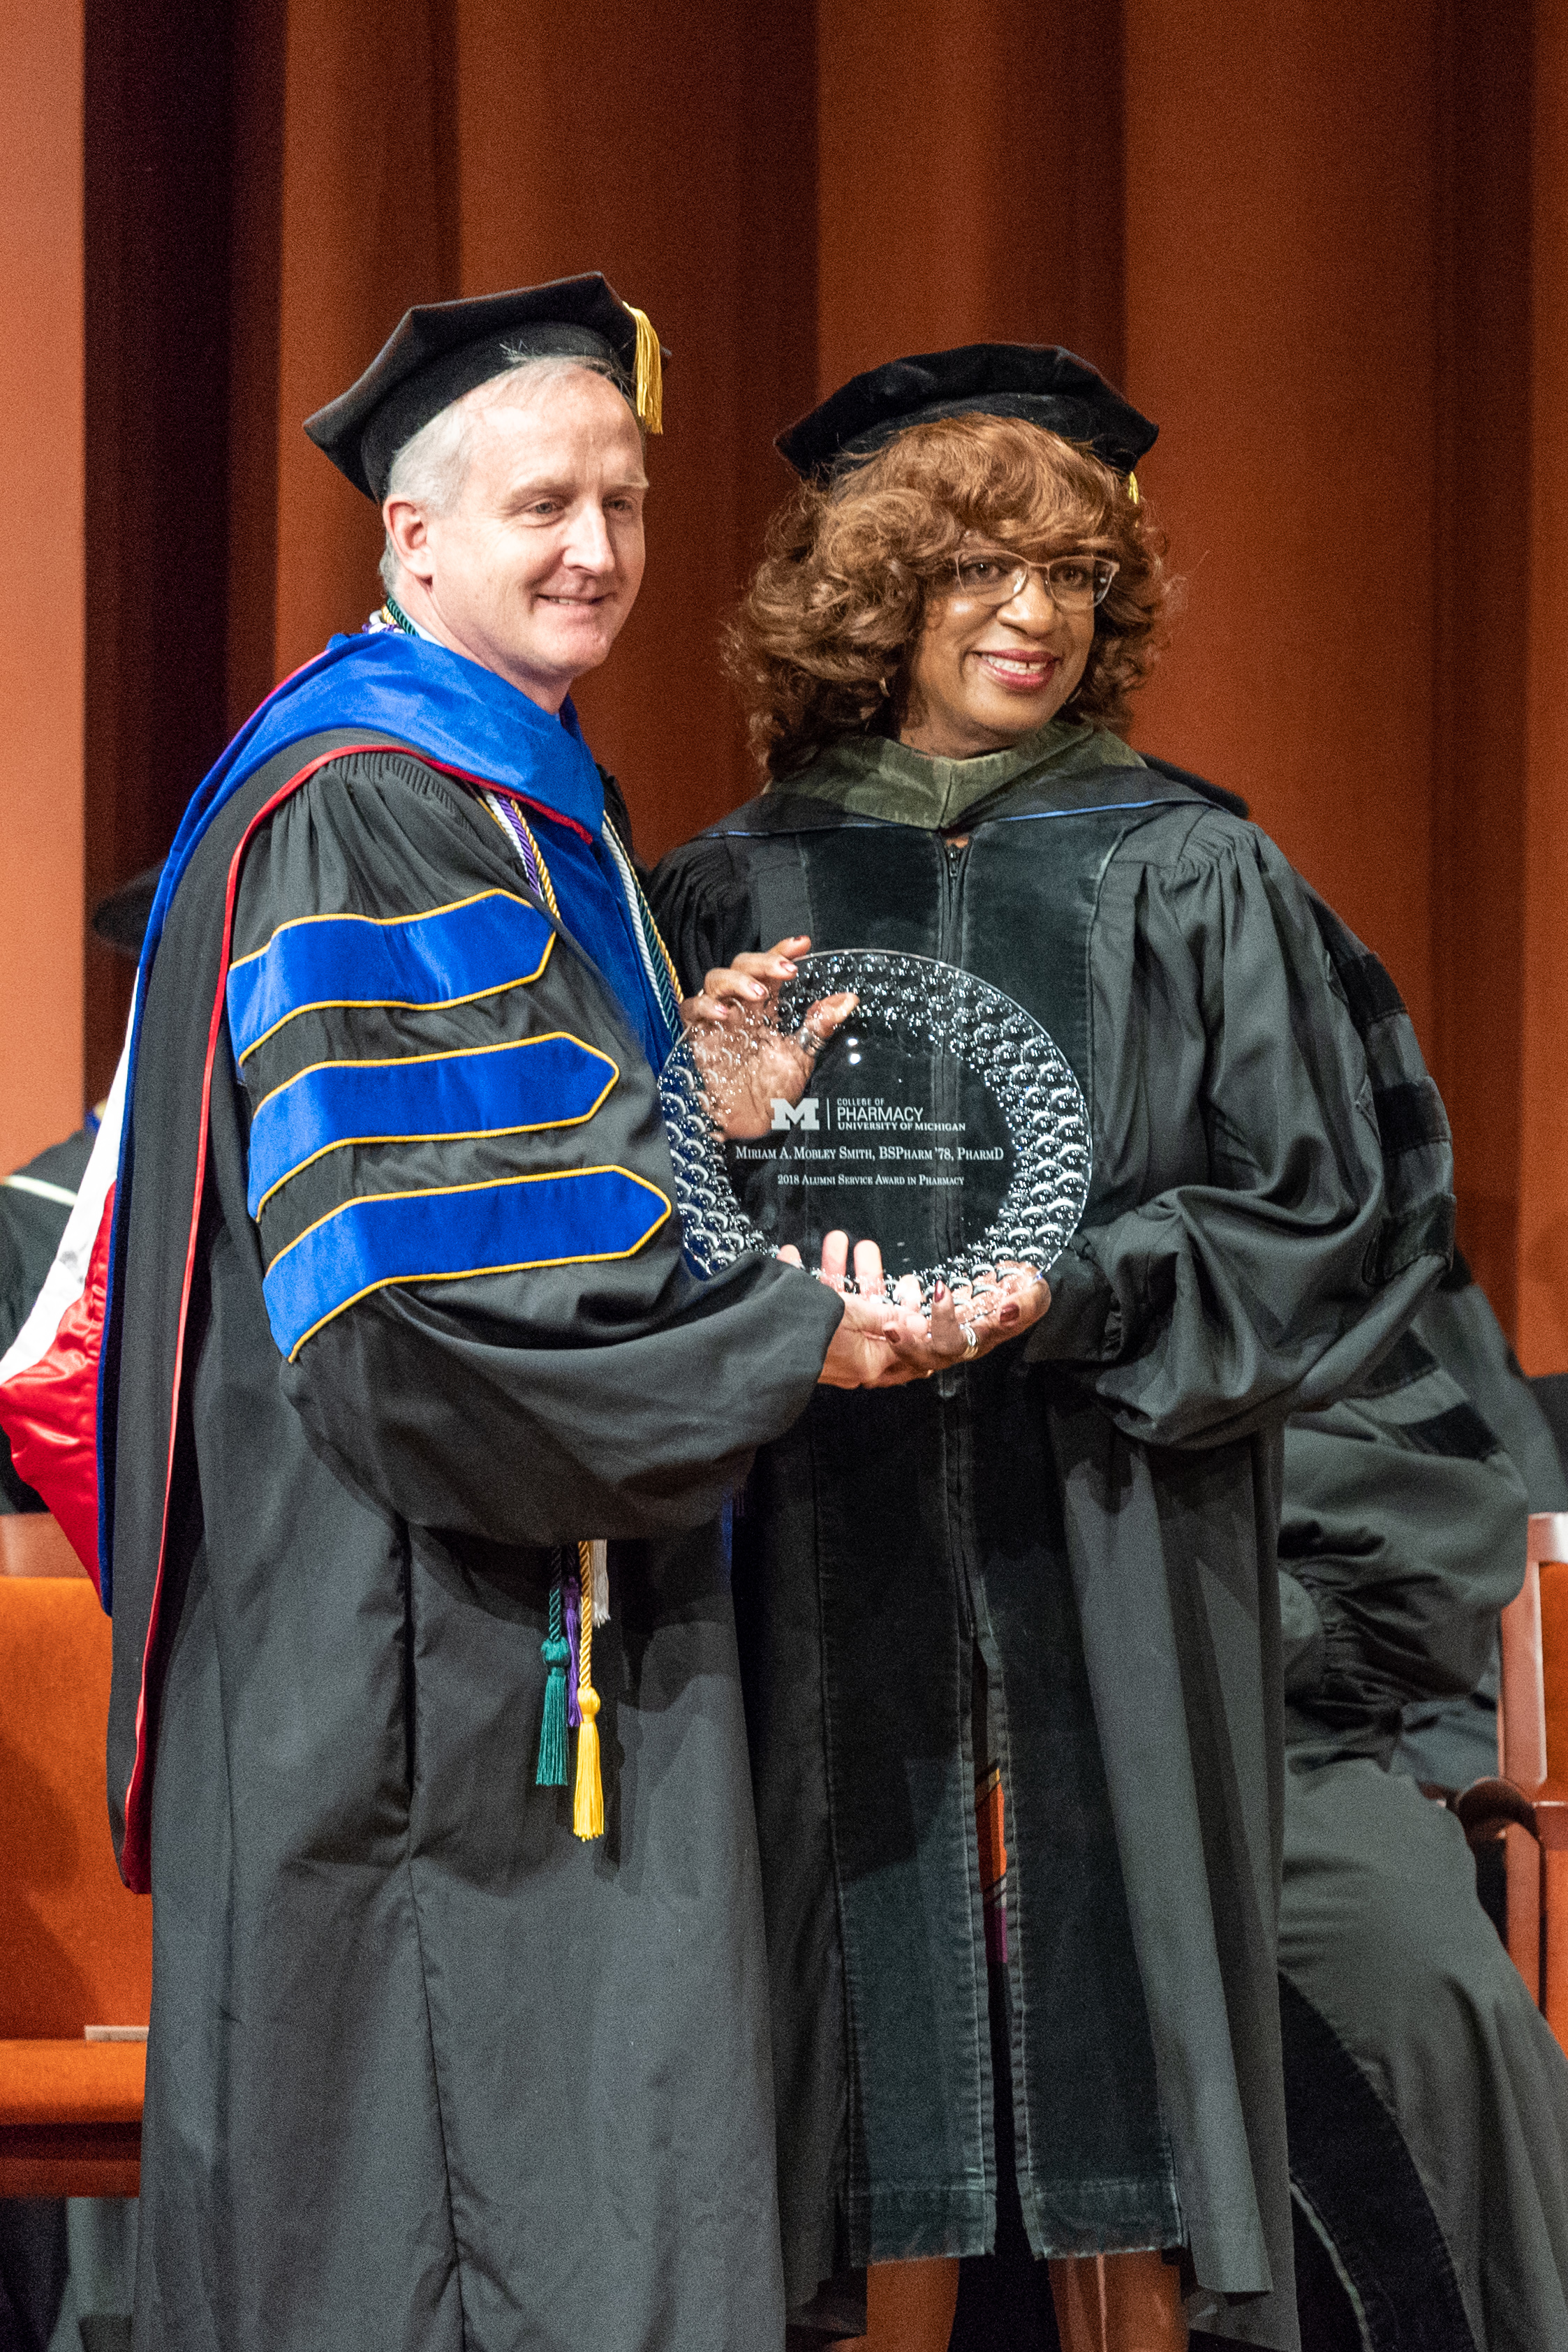 Dean James Dalton with Dr. Miriam Mobley Smith at the 2018 U-M Pharmacy commencement ceremony.